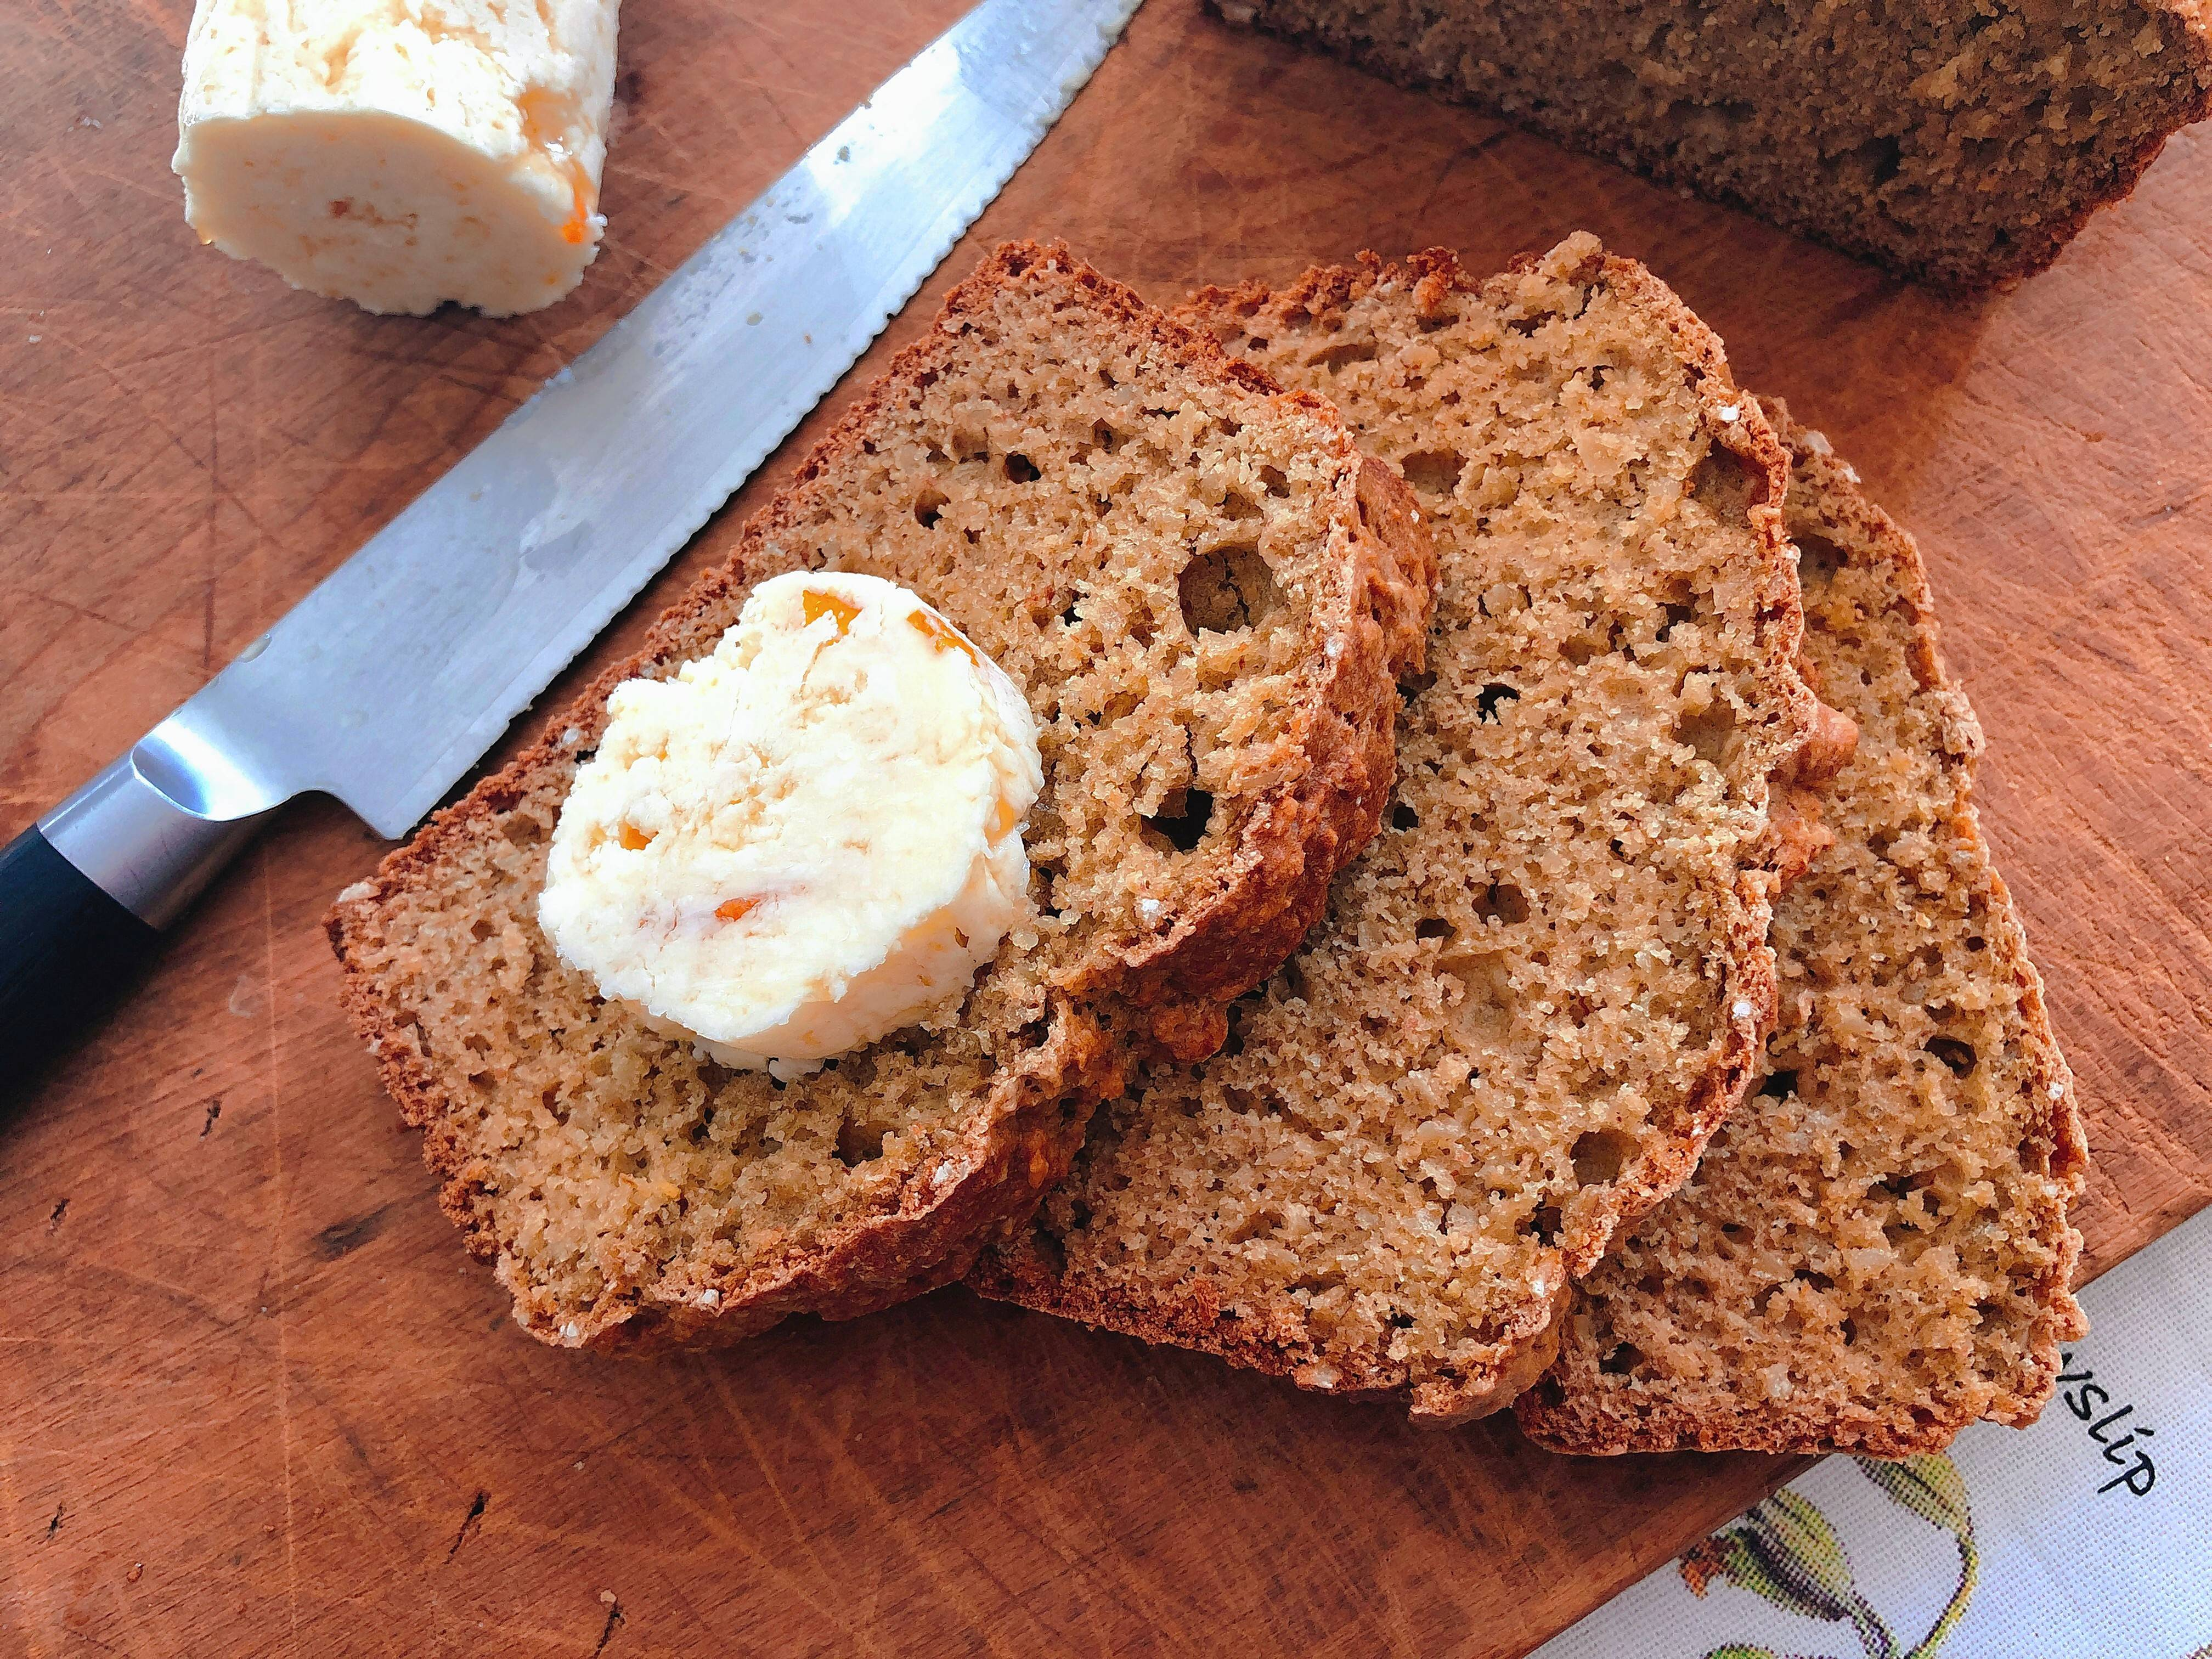 Wheaten bread with sweet Scotch whisky butter.